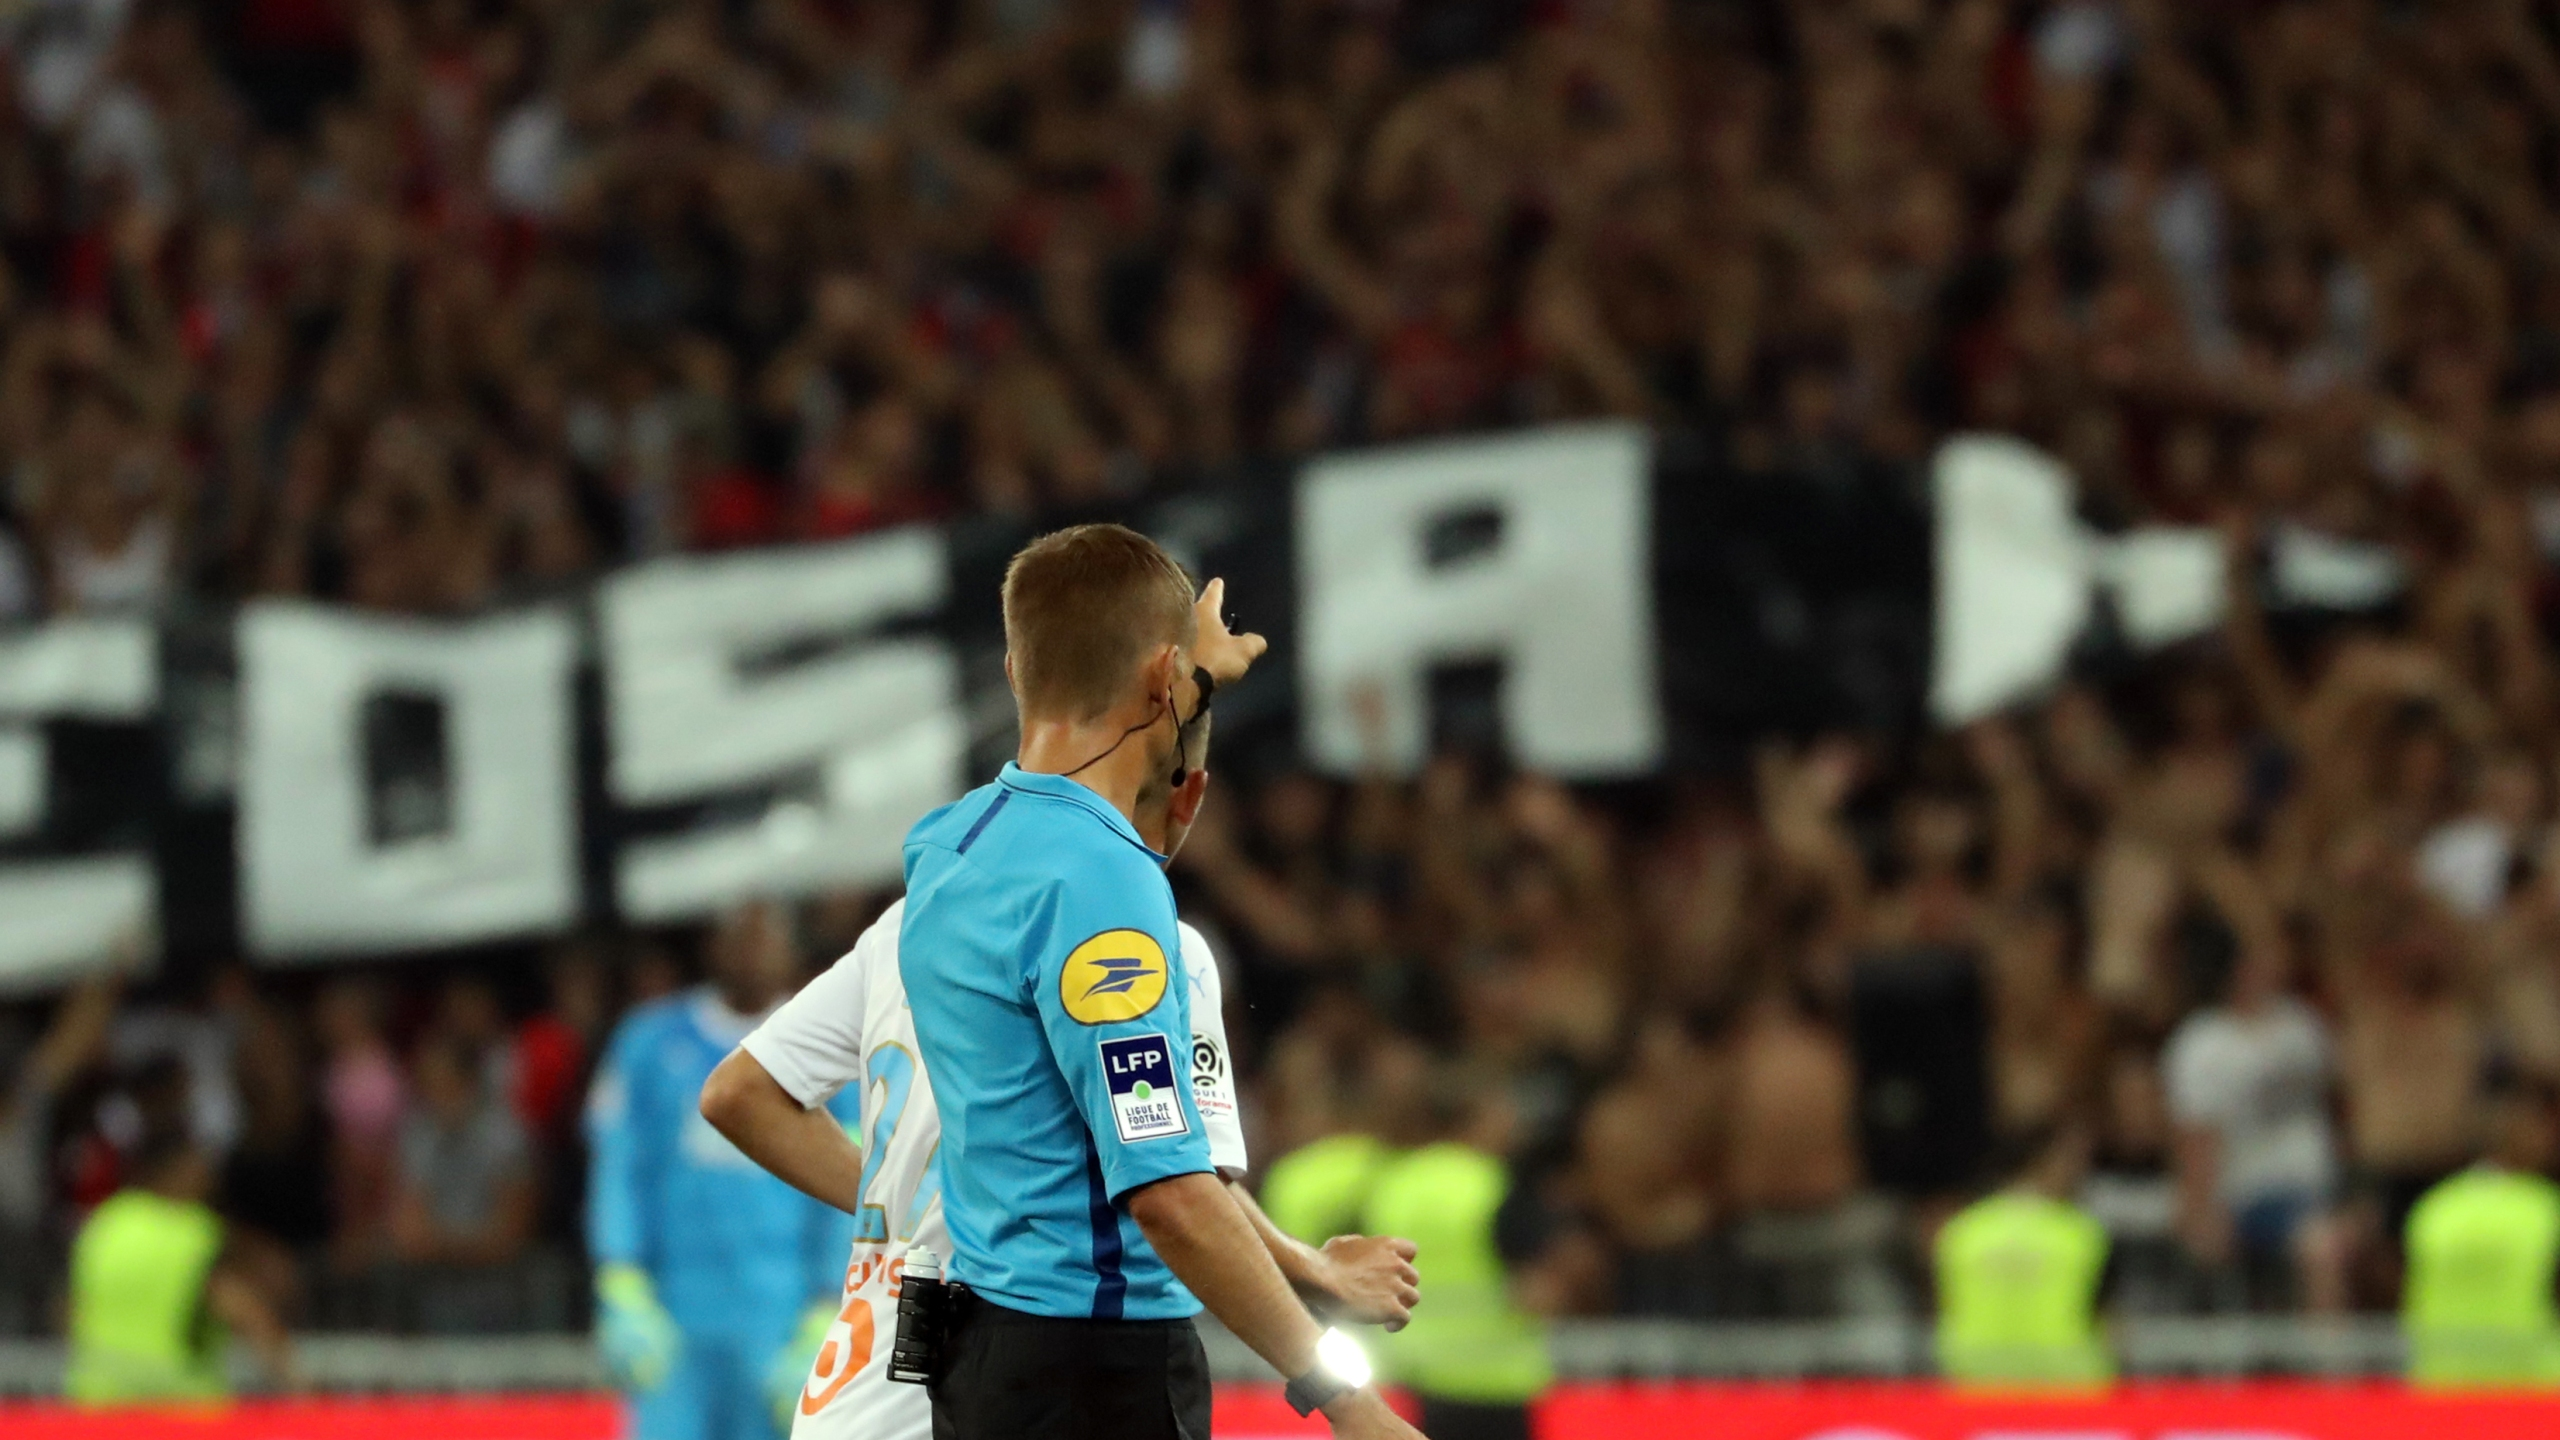 French referee Clement Turpin gestures as he halts the game after supporters shouted homophobic songs and brandished banners during the football match between OGC Nice and Olympique de Marseille on August 28, 2019 in southeastern France. (Credit: VALERY HACHE/AFP/Getty Images)